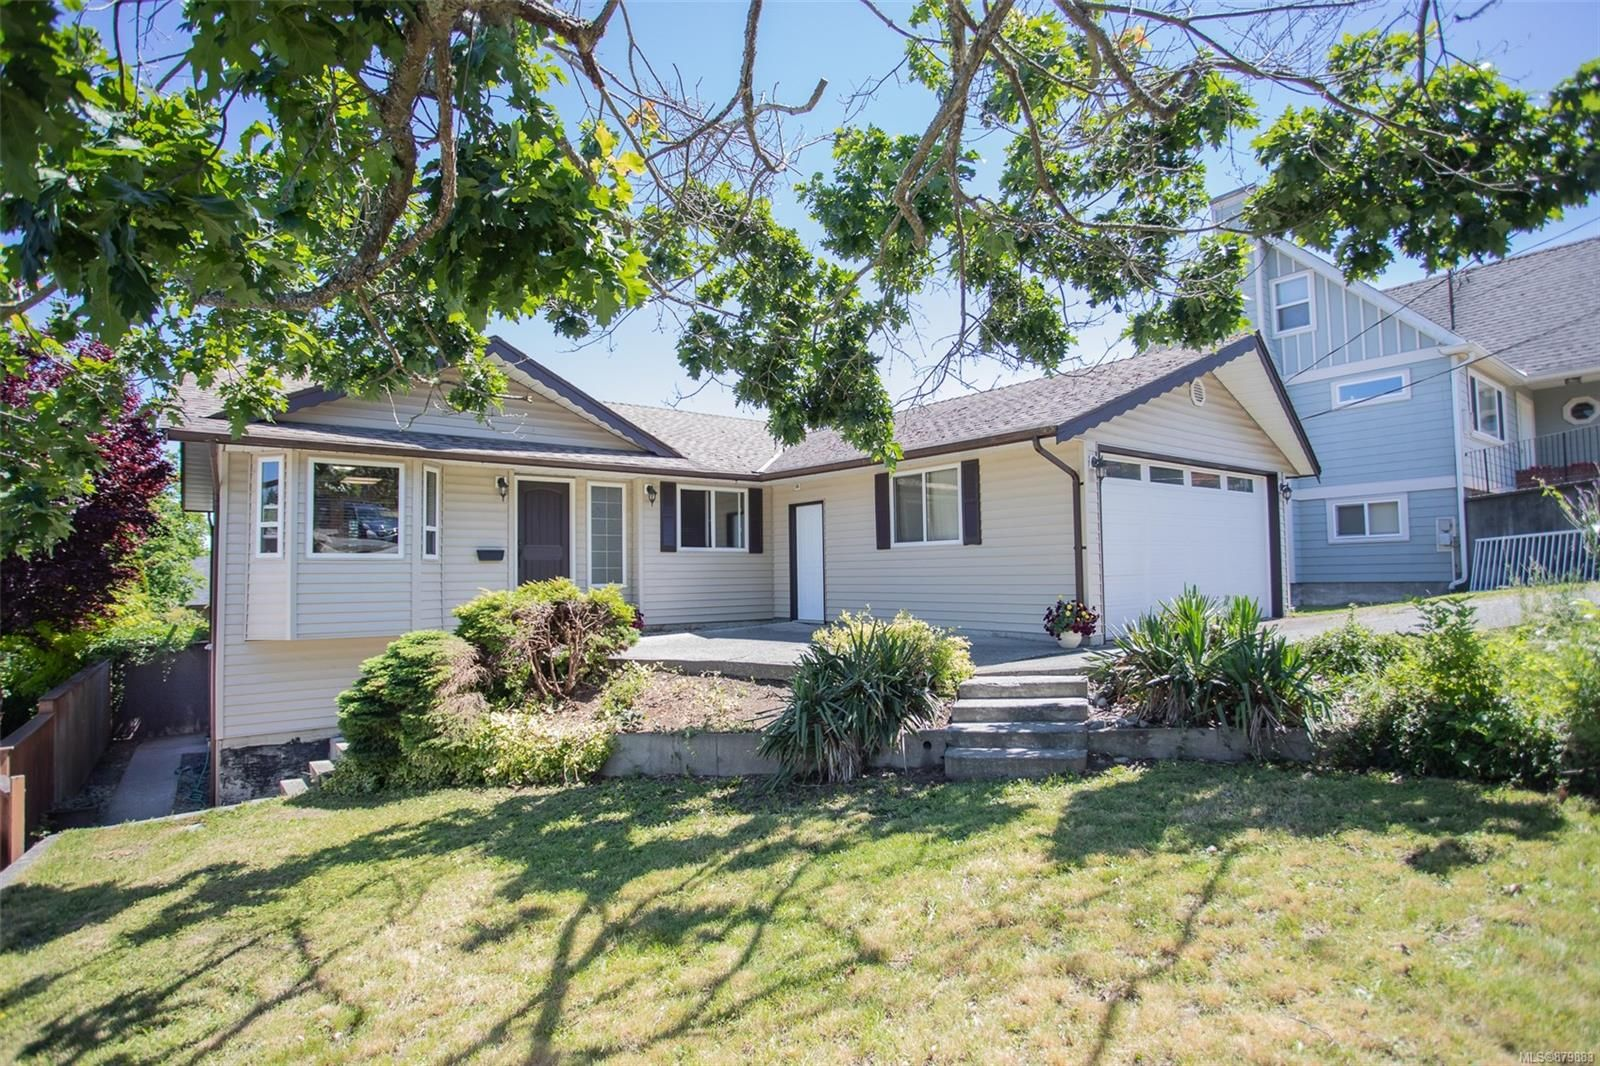 Main Photo: 2720 Elk St in Nanaimo: Na Departure Bay House for sale : MLS®# 879883